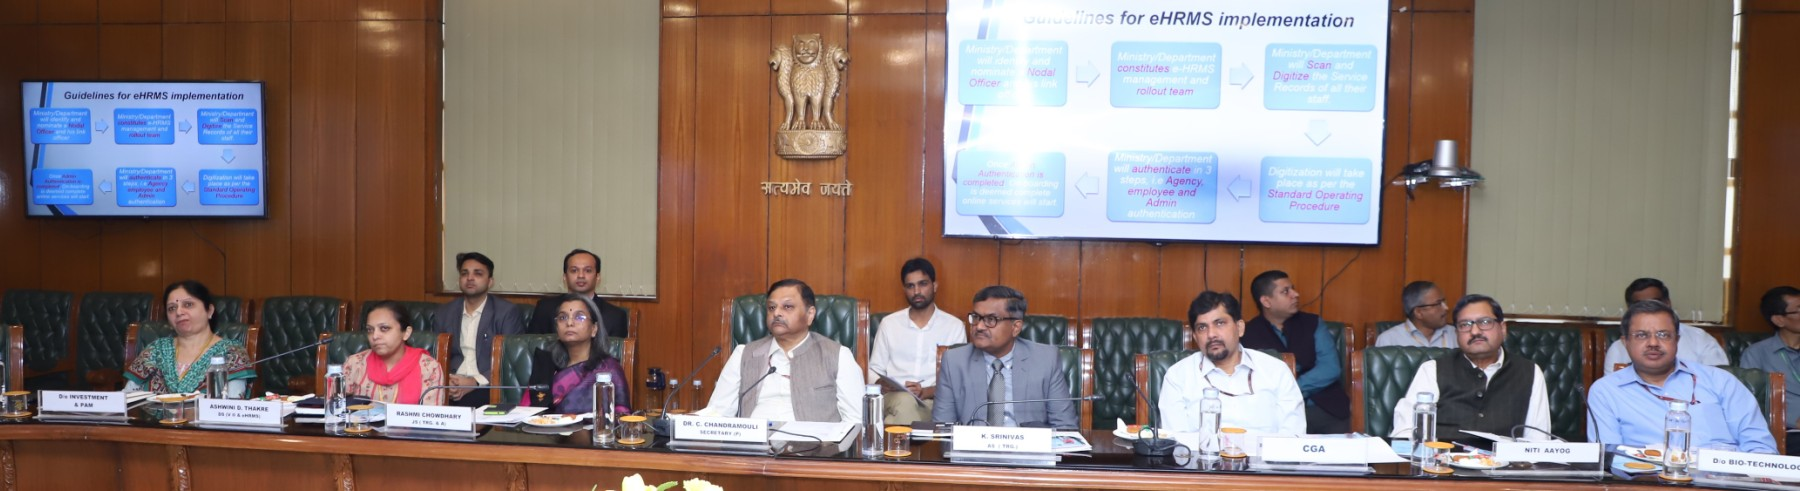 Second Phase of e-HRMS roll-out in 54 Ministries / Departments